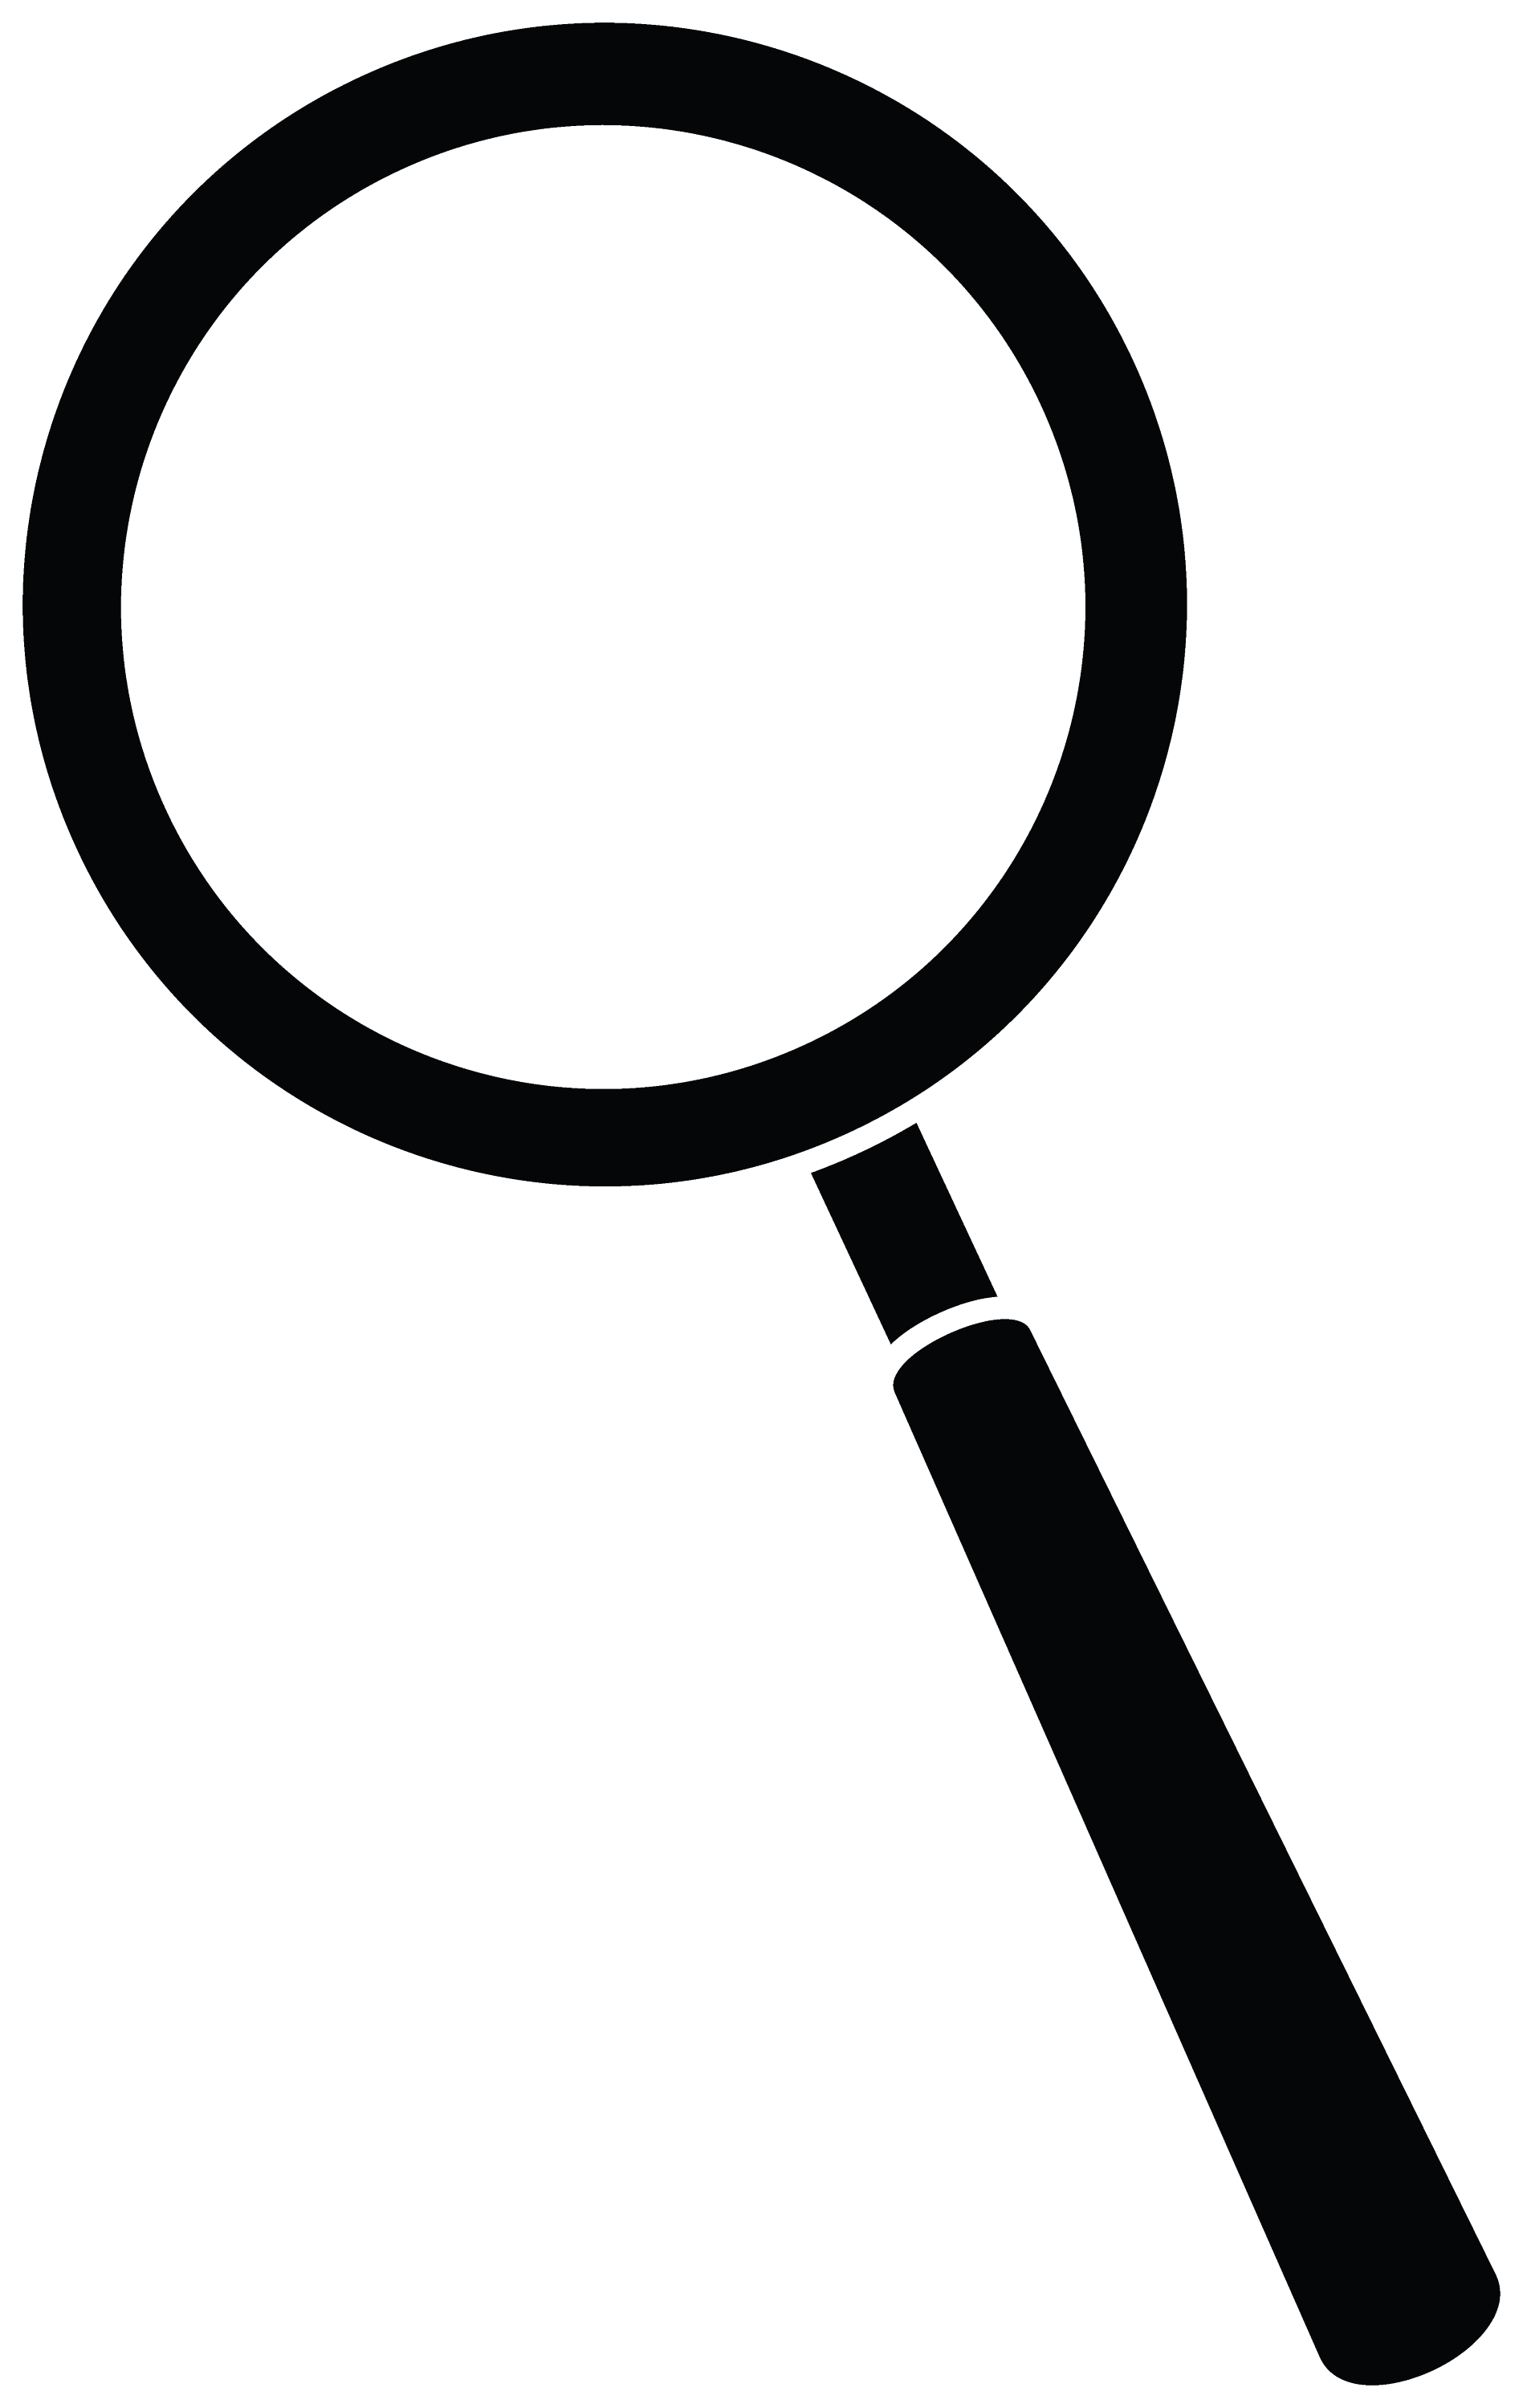 Magnifying glass silhouette free clip art magnifying glass silhouette voltagebd Gallery